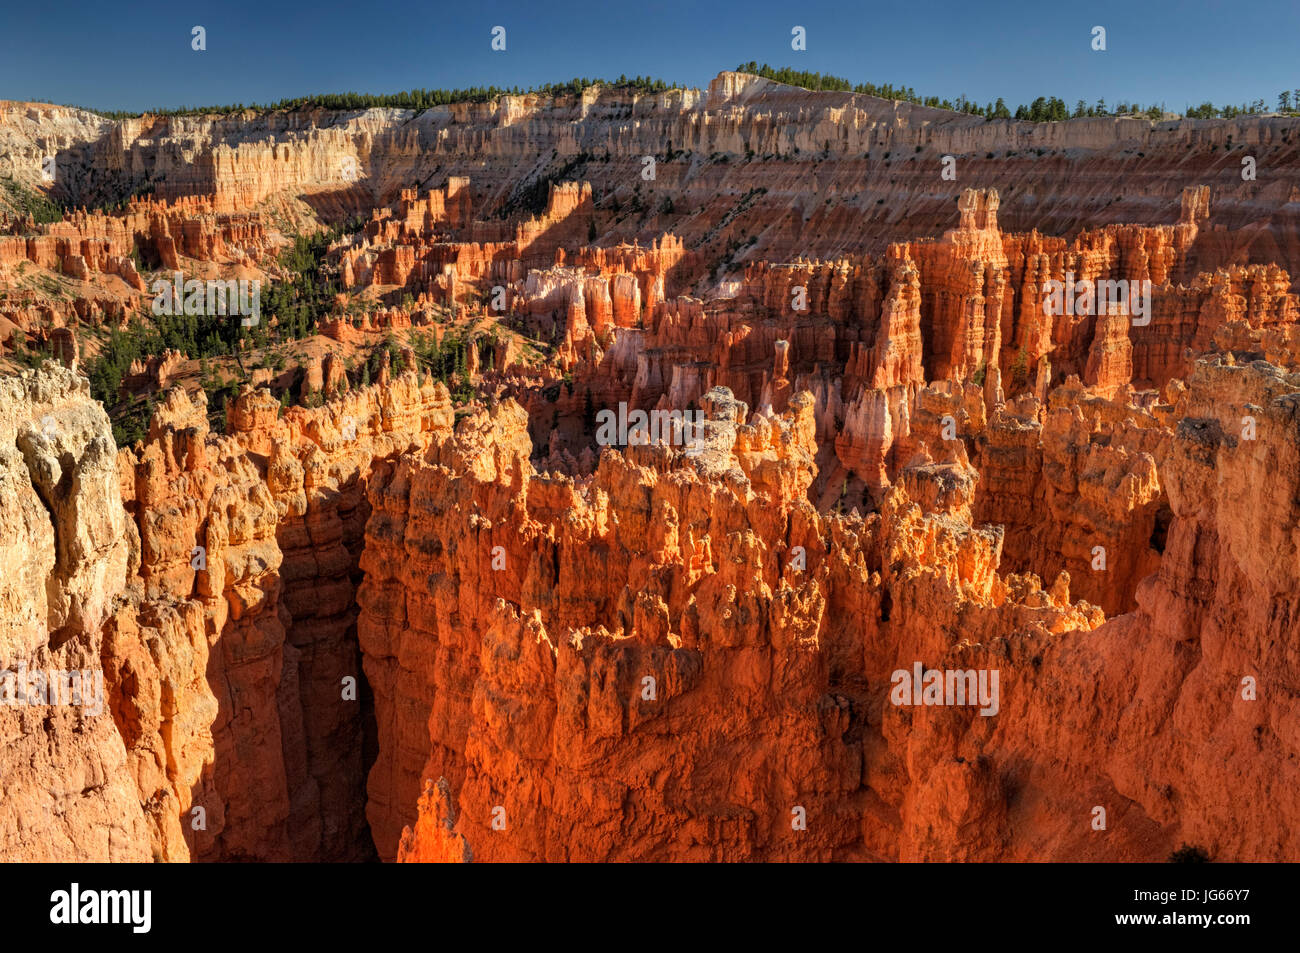 Die Aussicht vom Sunset Point bei Sonnenuntergang, Bryce-Canyon-Nationalpark, Utah Stockbild